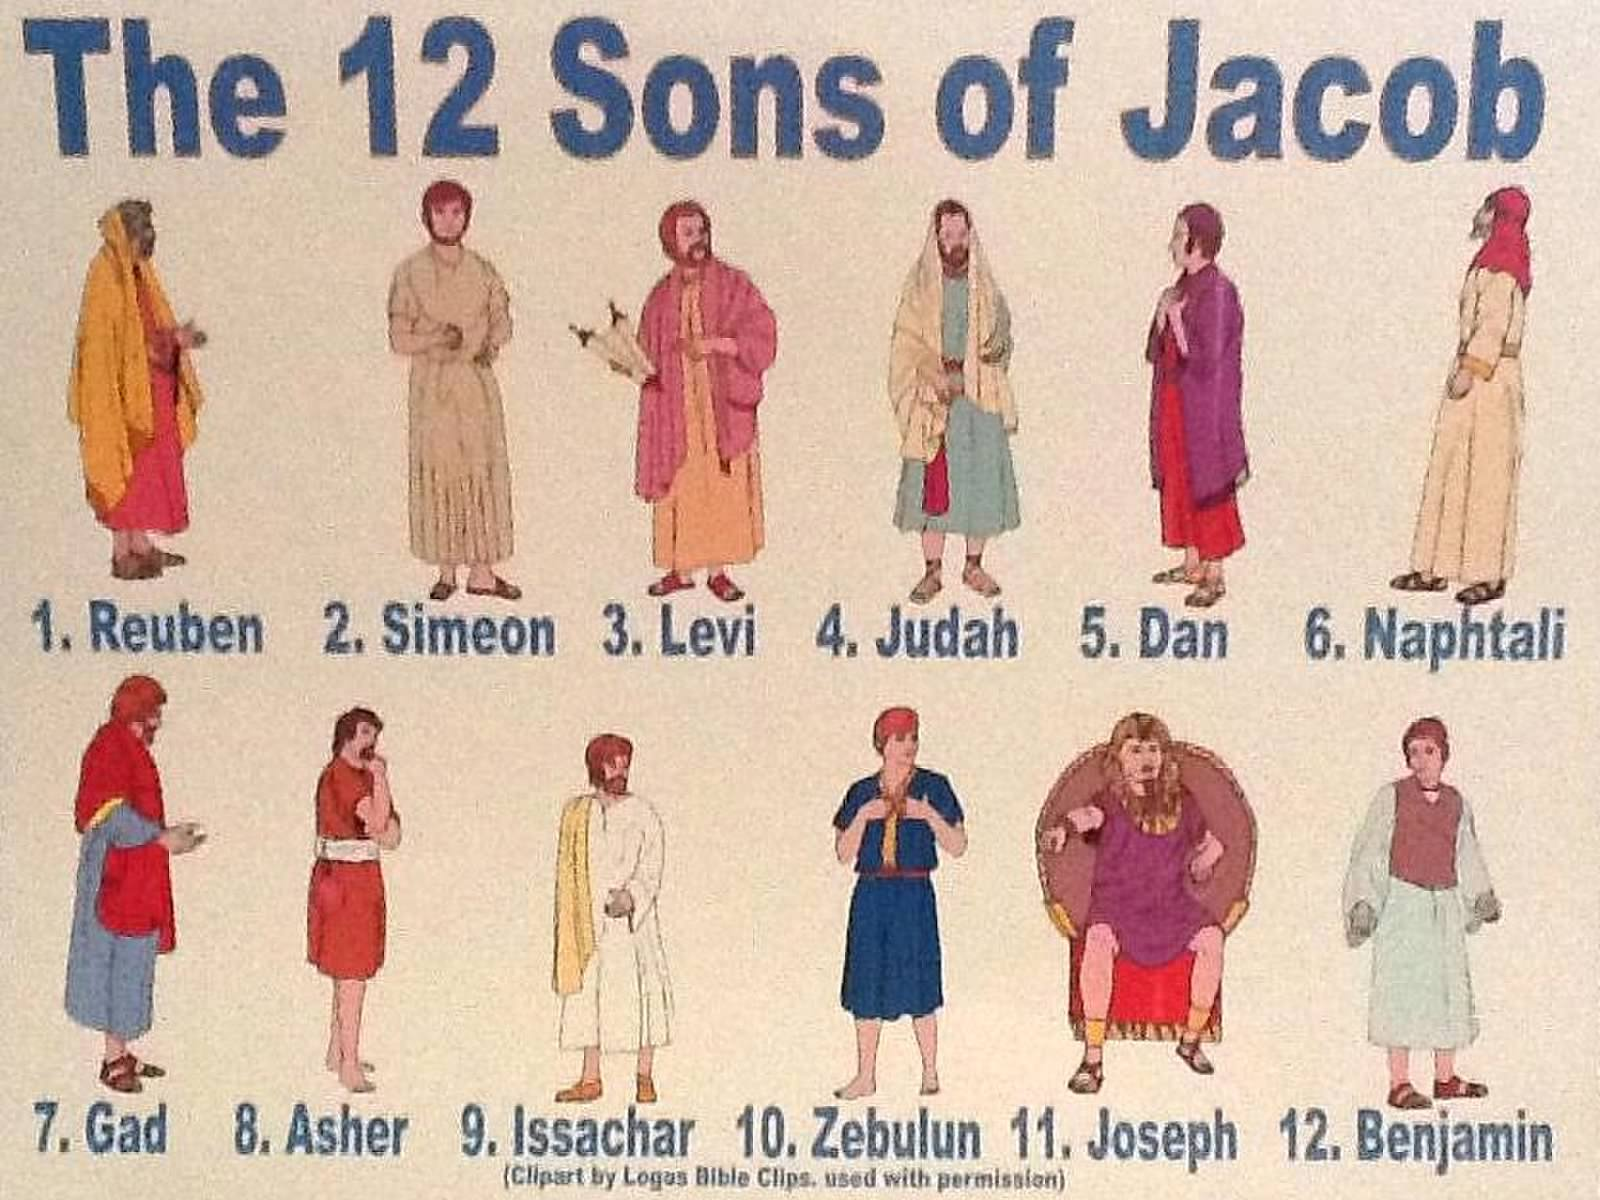 The Testaments of the Twelve Patriarchs – An Early Christian Text of the 12 Sons of Jacob